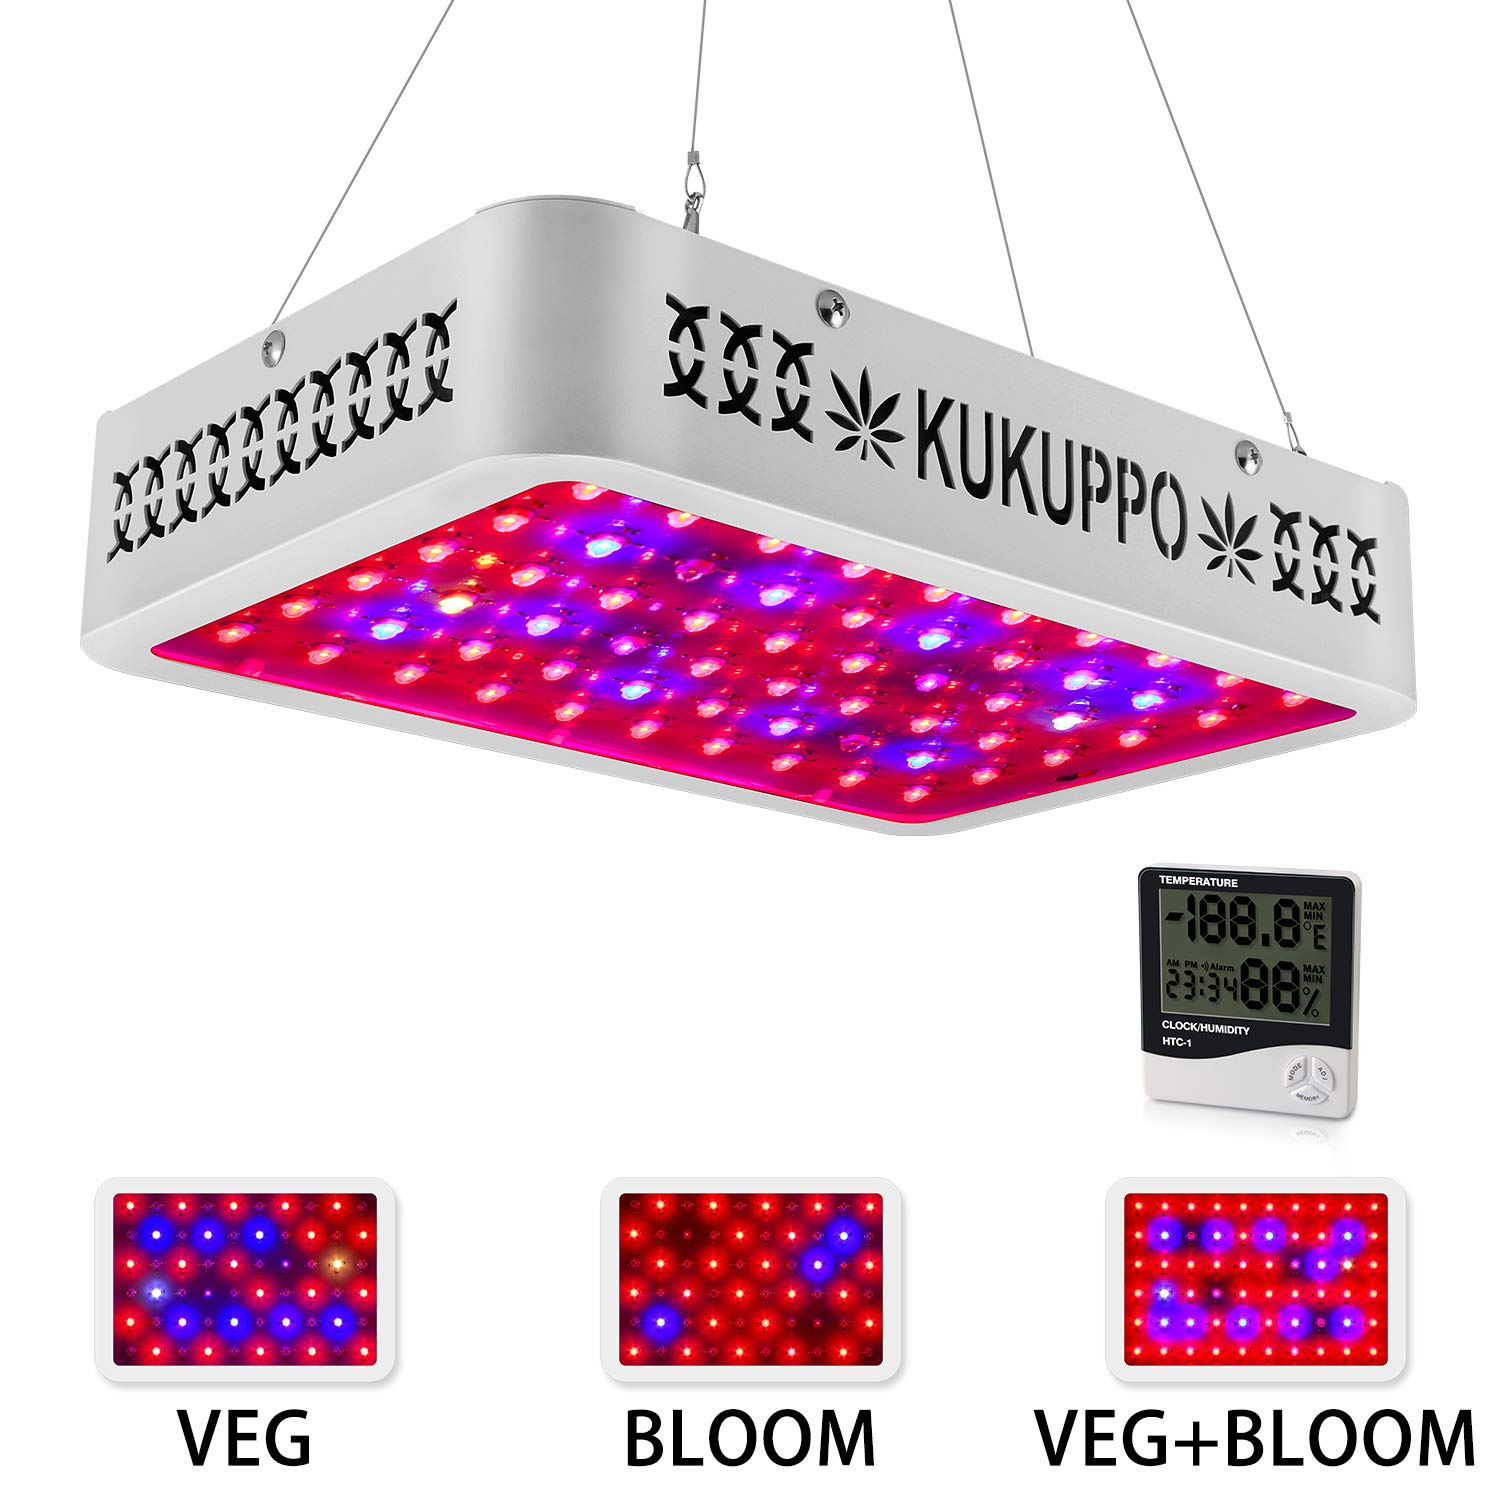 KUKUPPO 600W LED Grow Light Full Spectrum IR UV for Indoor Plants Horticulture Greenhouse Hydroponic Veg and Bloom, Has Daisy Chain Function Growing Light Fixtures by KUKUPPO